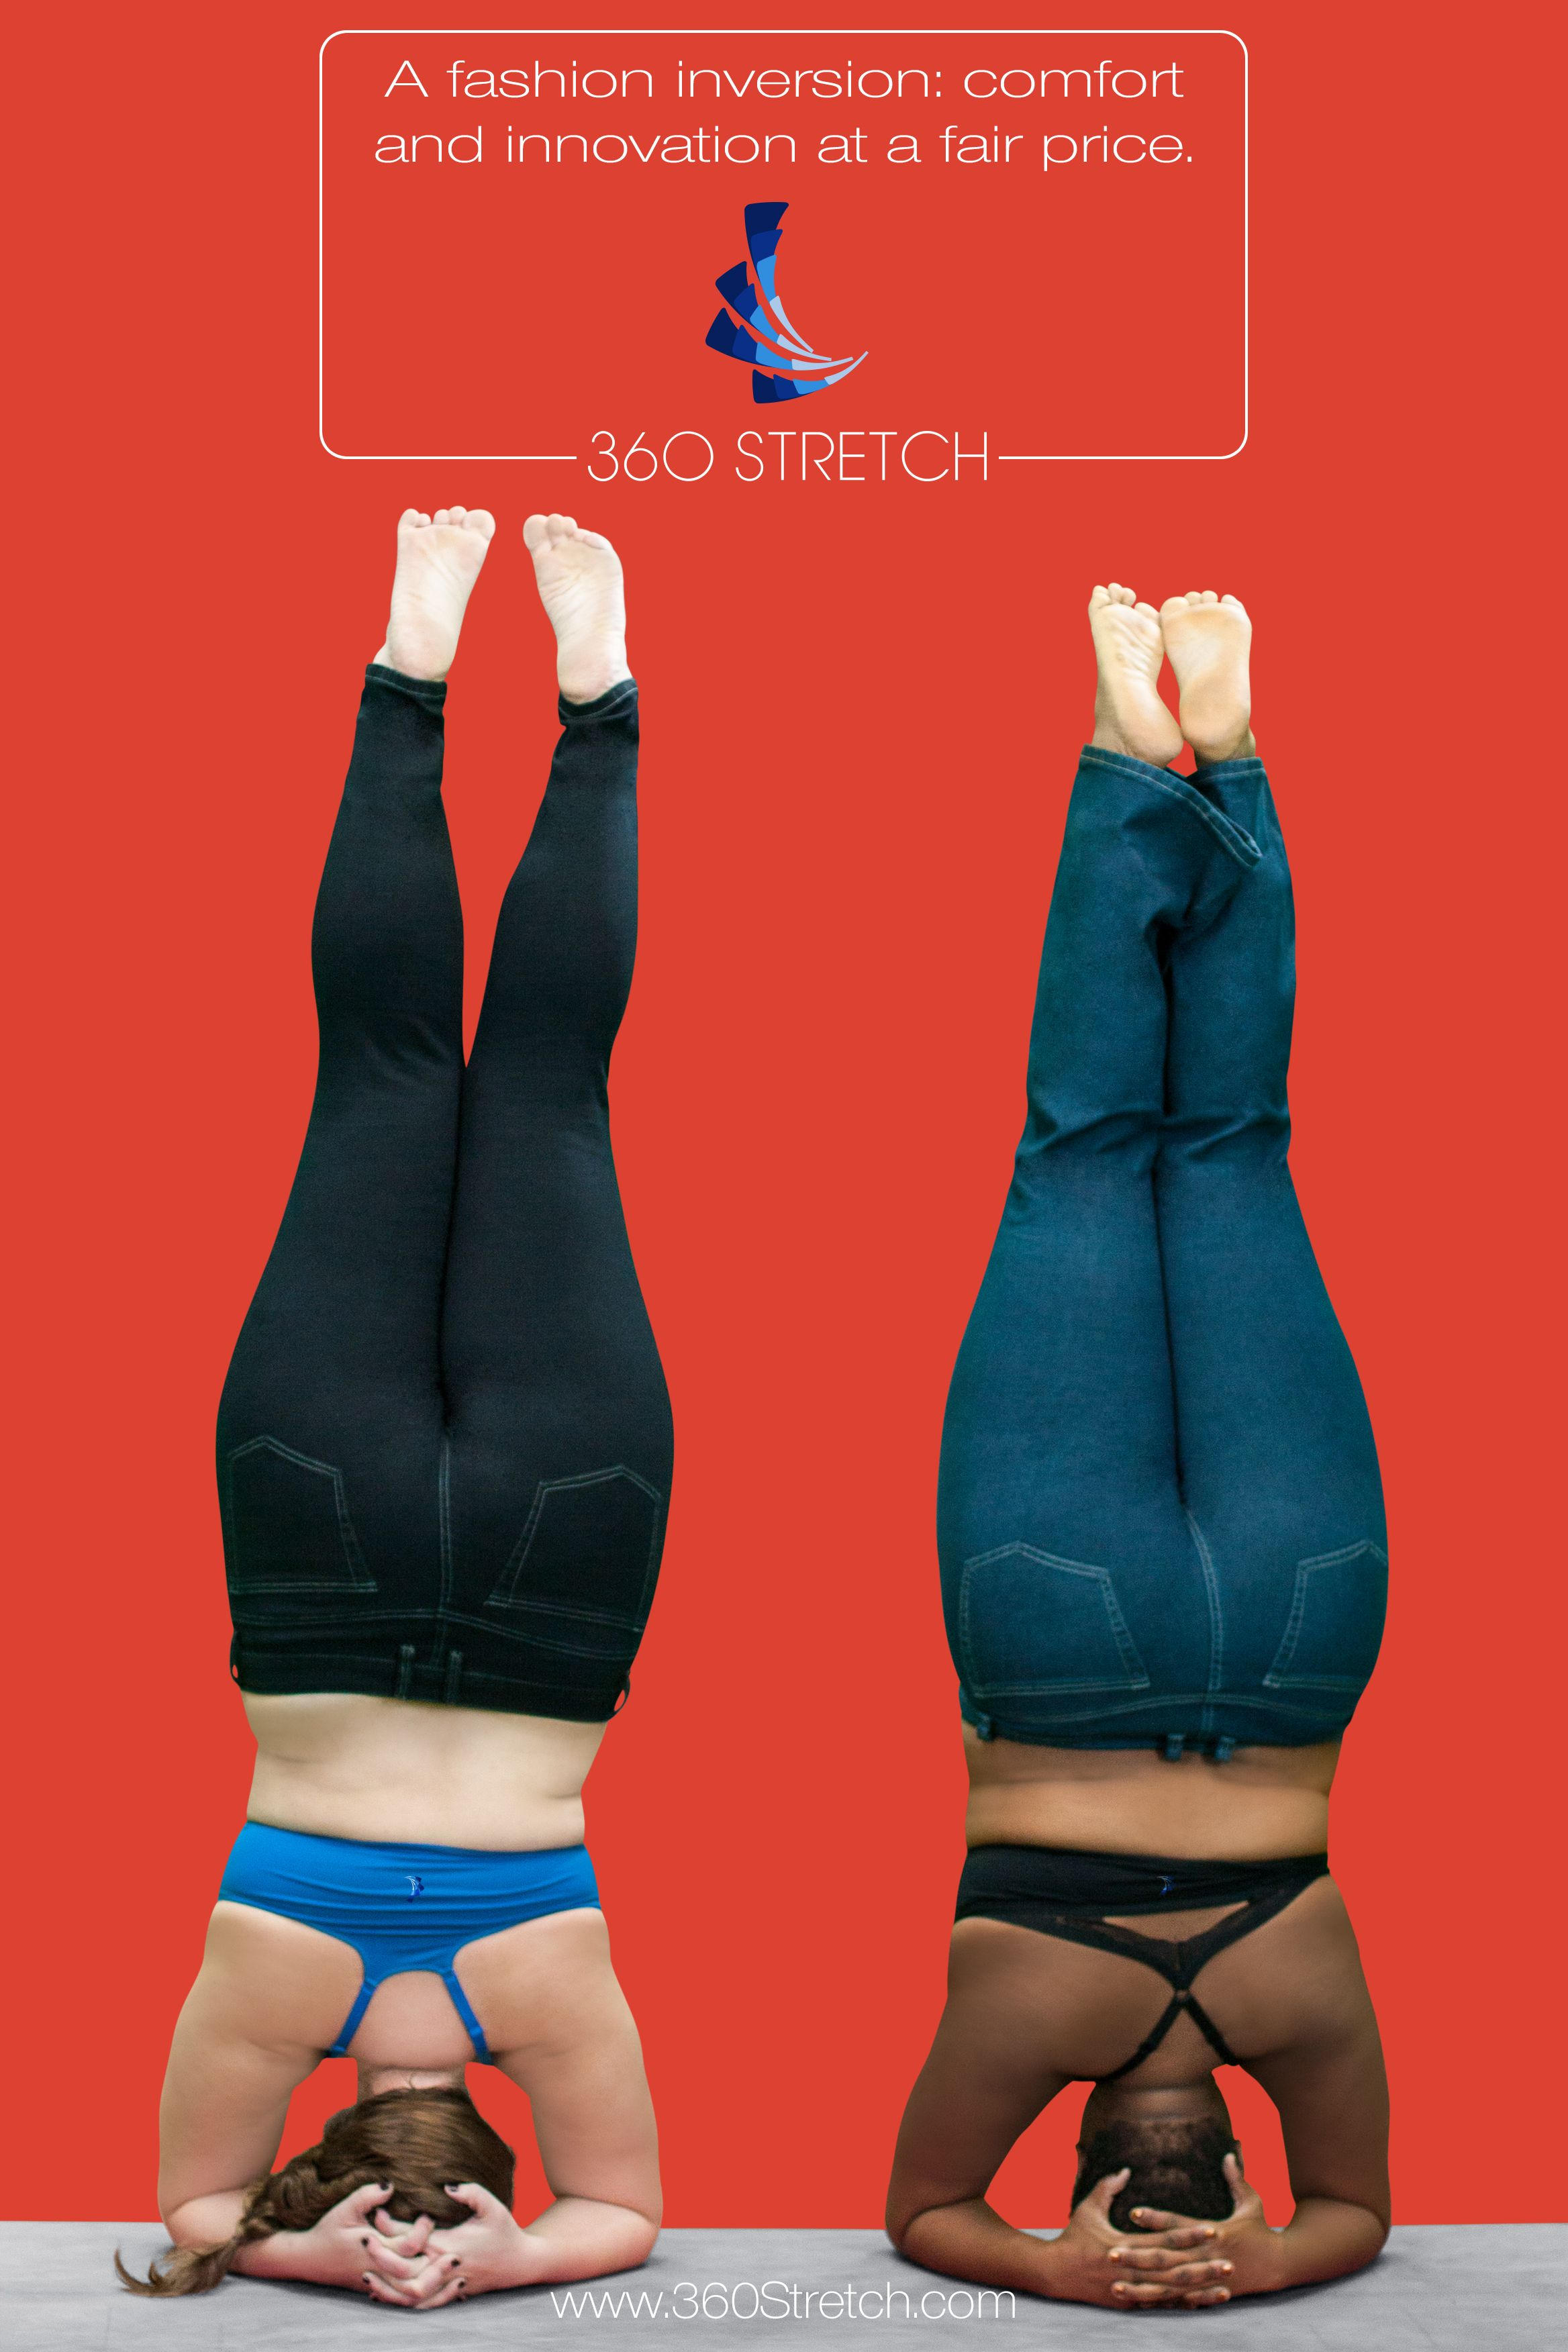 Plus Size Yoga Instructors Dana Falsetti (Left) and Jessamyn (Right) doing yoga headstands in 360 Stretch High Rise Black Skinny Jeans and Mid Rise Dark Blue Relaxed Jeans.